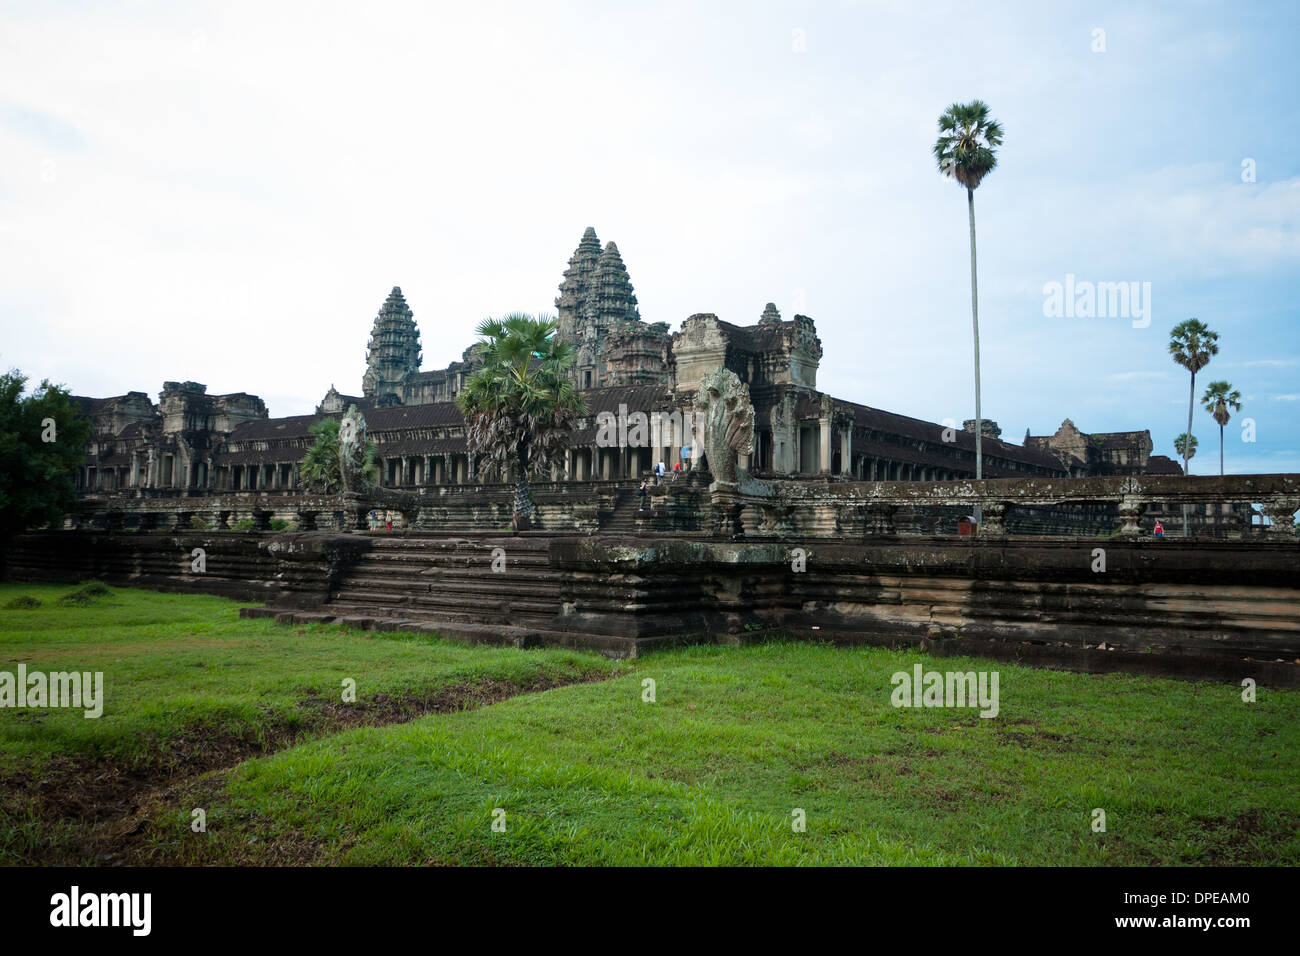 A view of Angkor Wat, Cambodia.  Angkor Wat is the largest religious monument in the world. Stock Photo